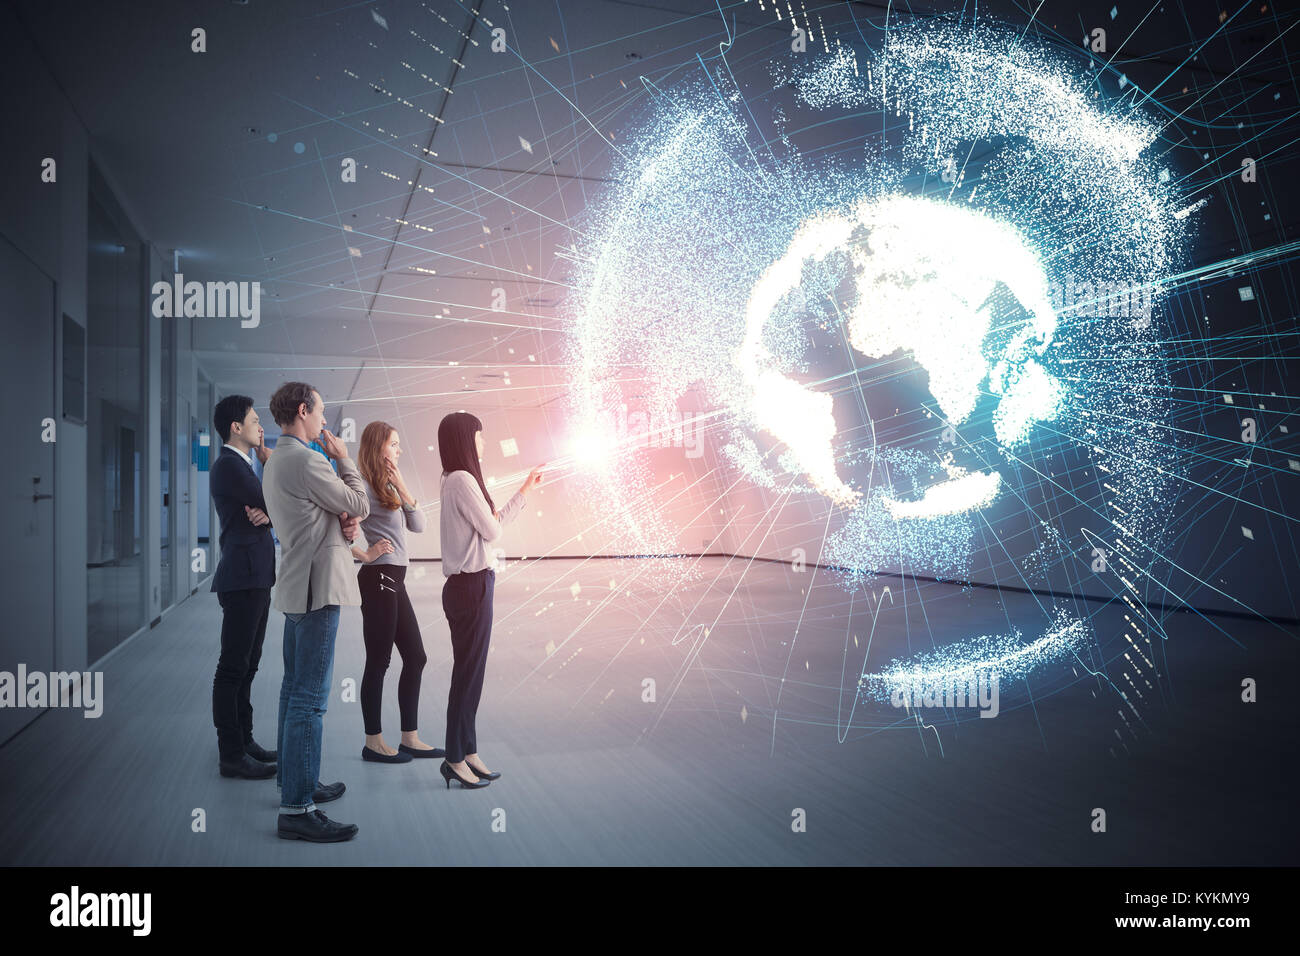 Group of people watching holographic of the earth. Astronomy concept. - Stock Image